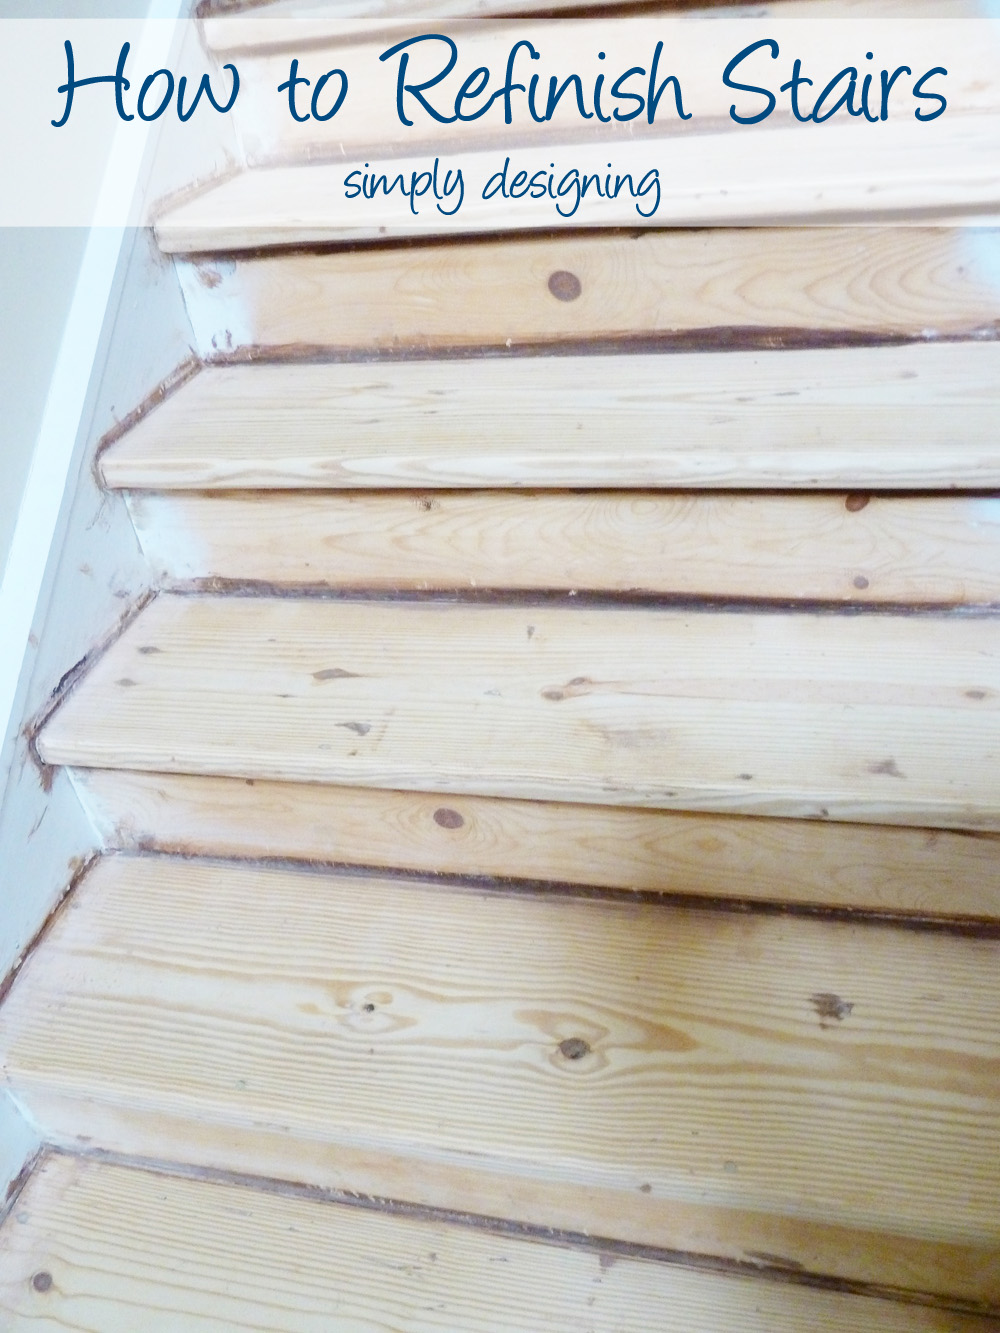 How To Refinish Stairs! #DIY #stairs #home #remodel #renovation #